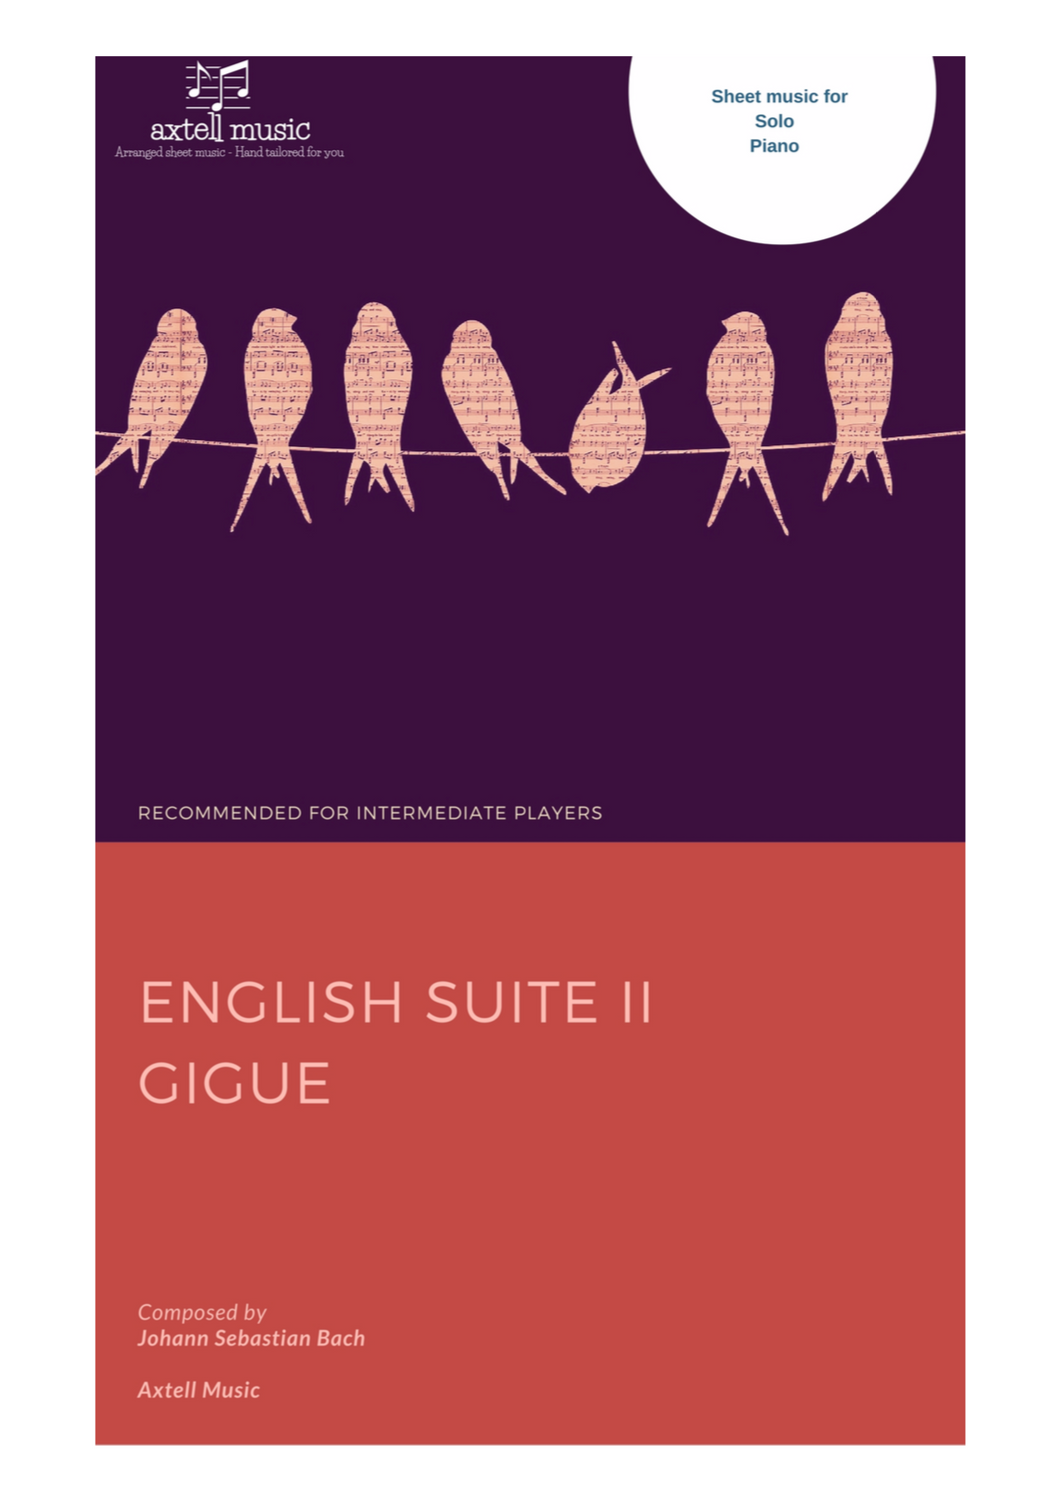 Cover art for English Suite II: Gigue composed by Johann Sebastian Bach, arranged for Easy Piano.